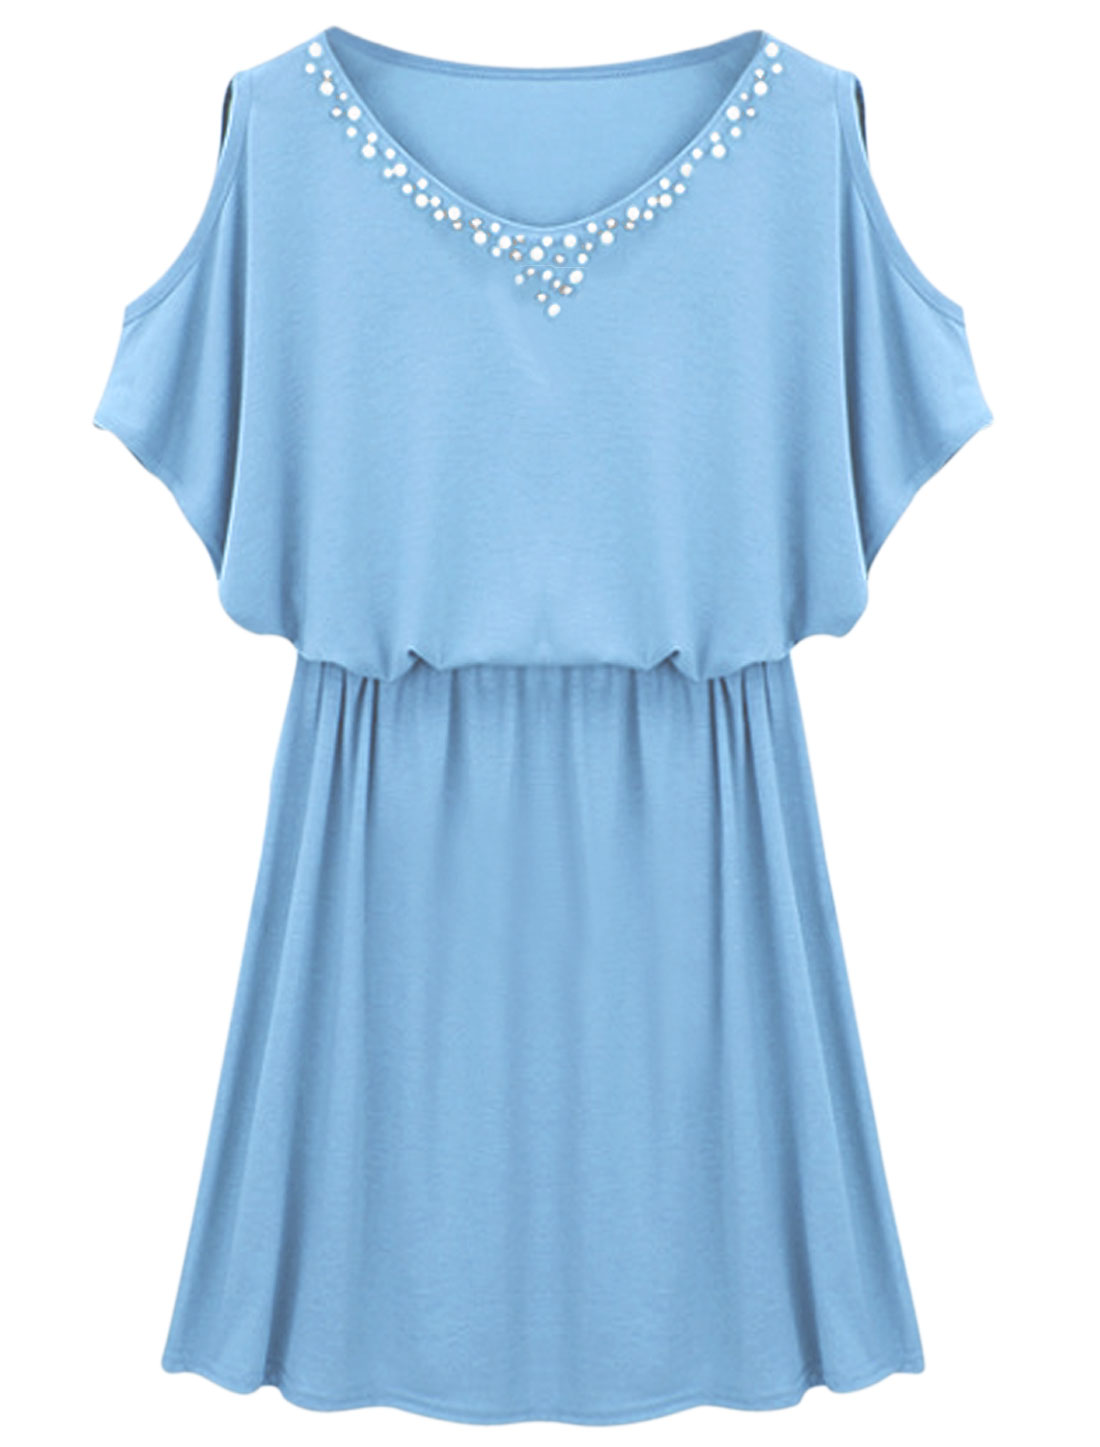 Women Round Neck Cut Out Shoulder Beads Decor Blouson Dress Sky Blue S